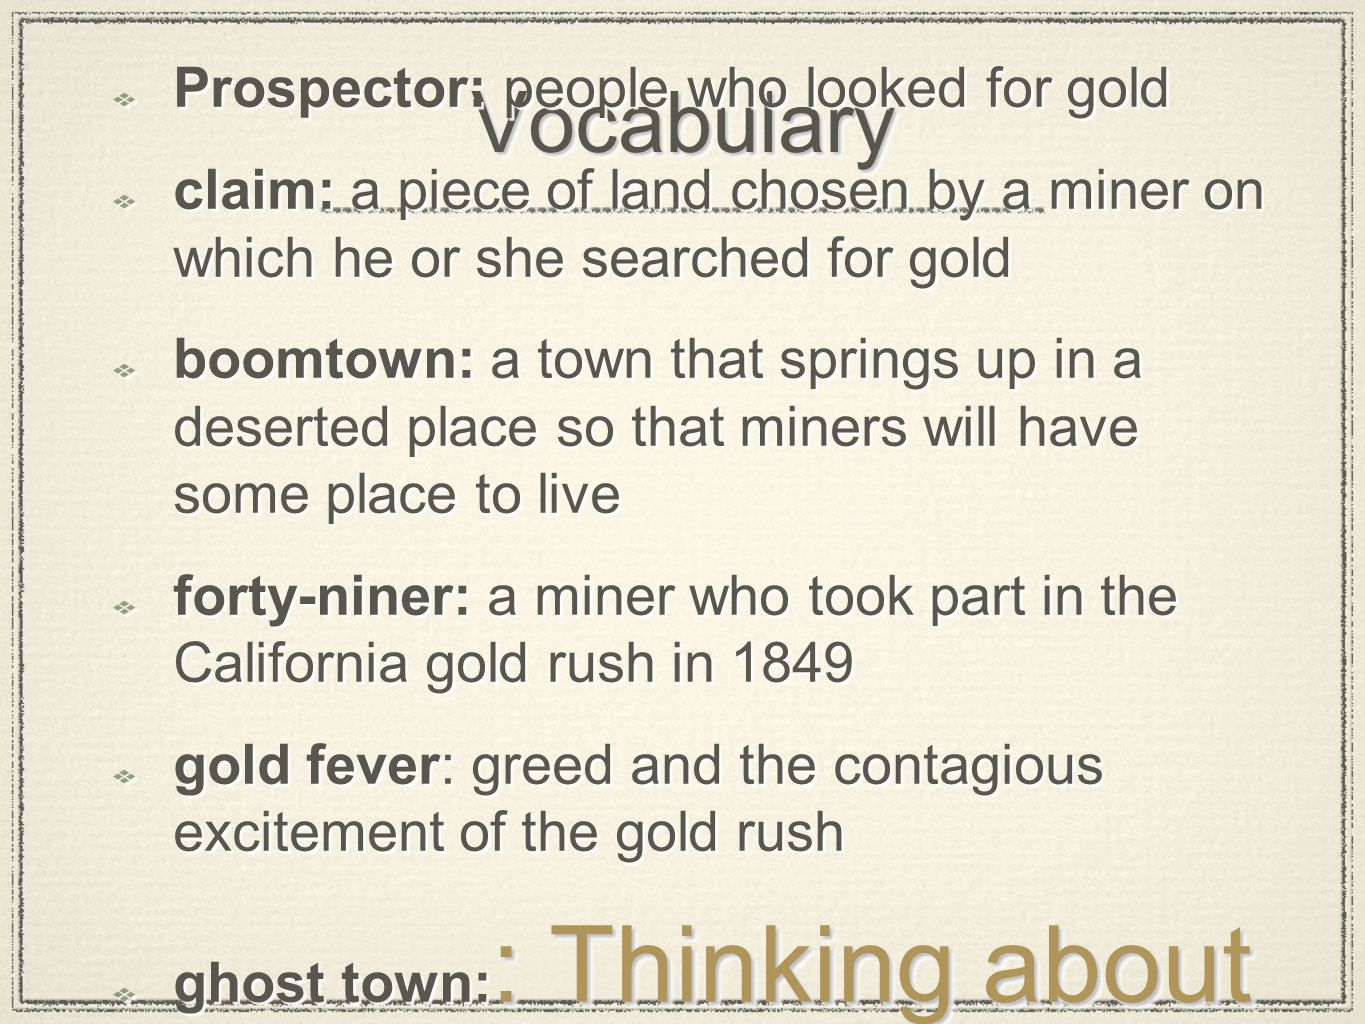 Vocabulary Prospector: people who looked for gold